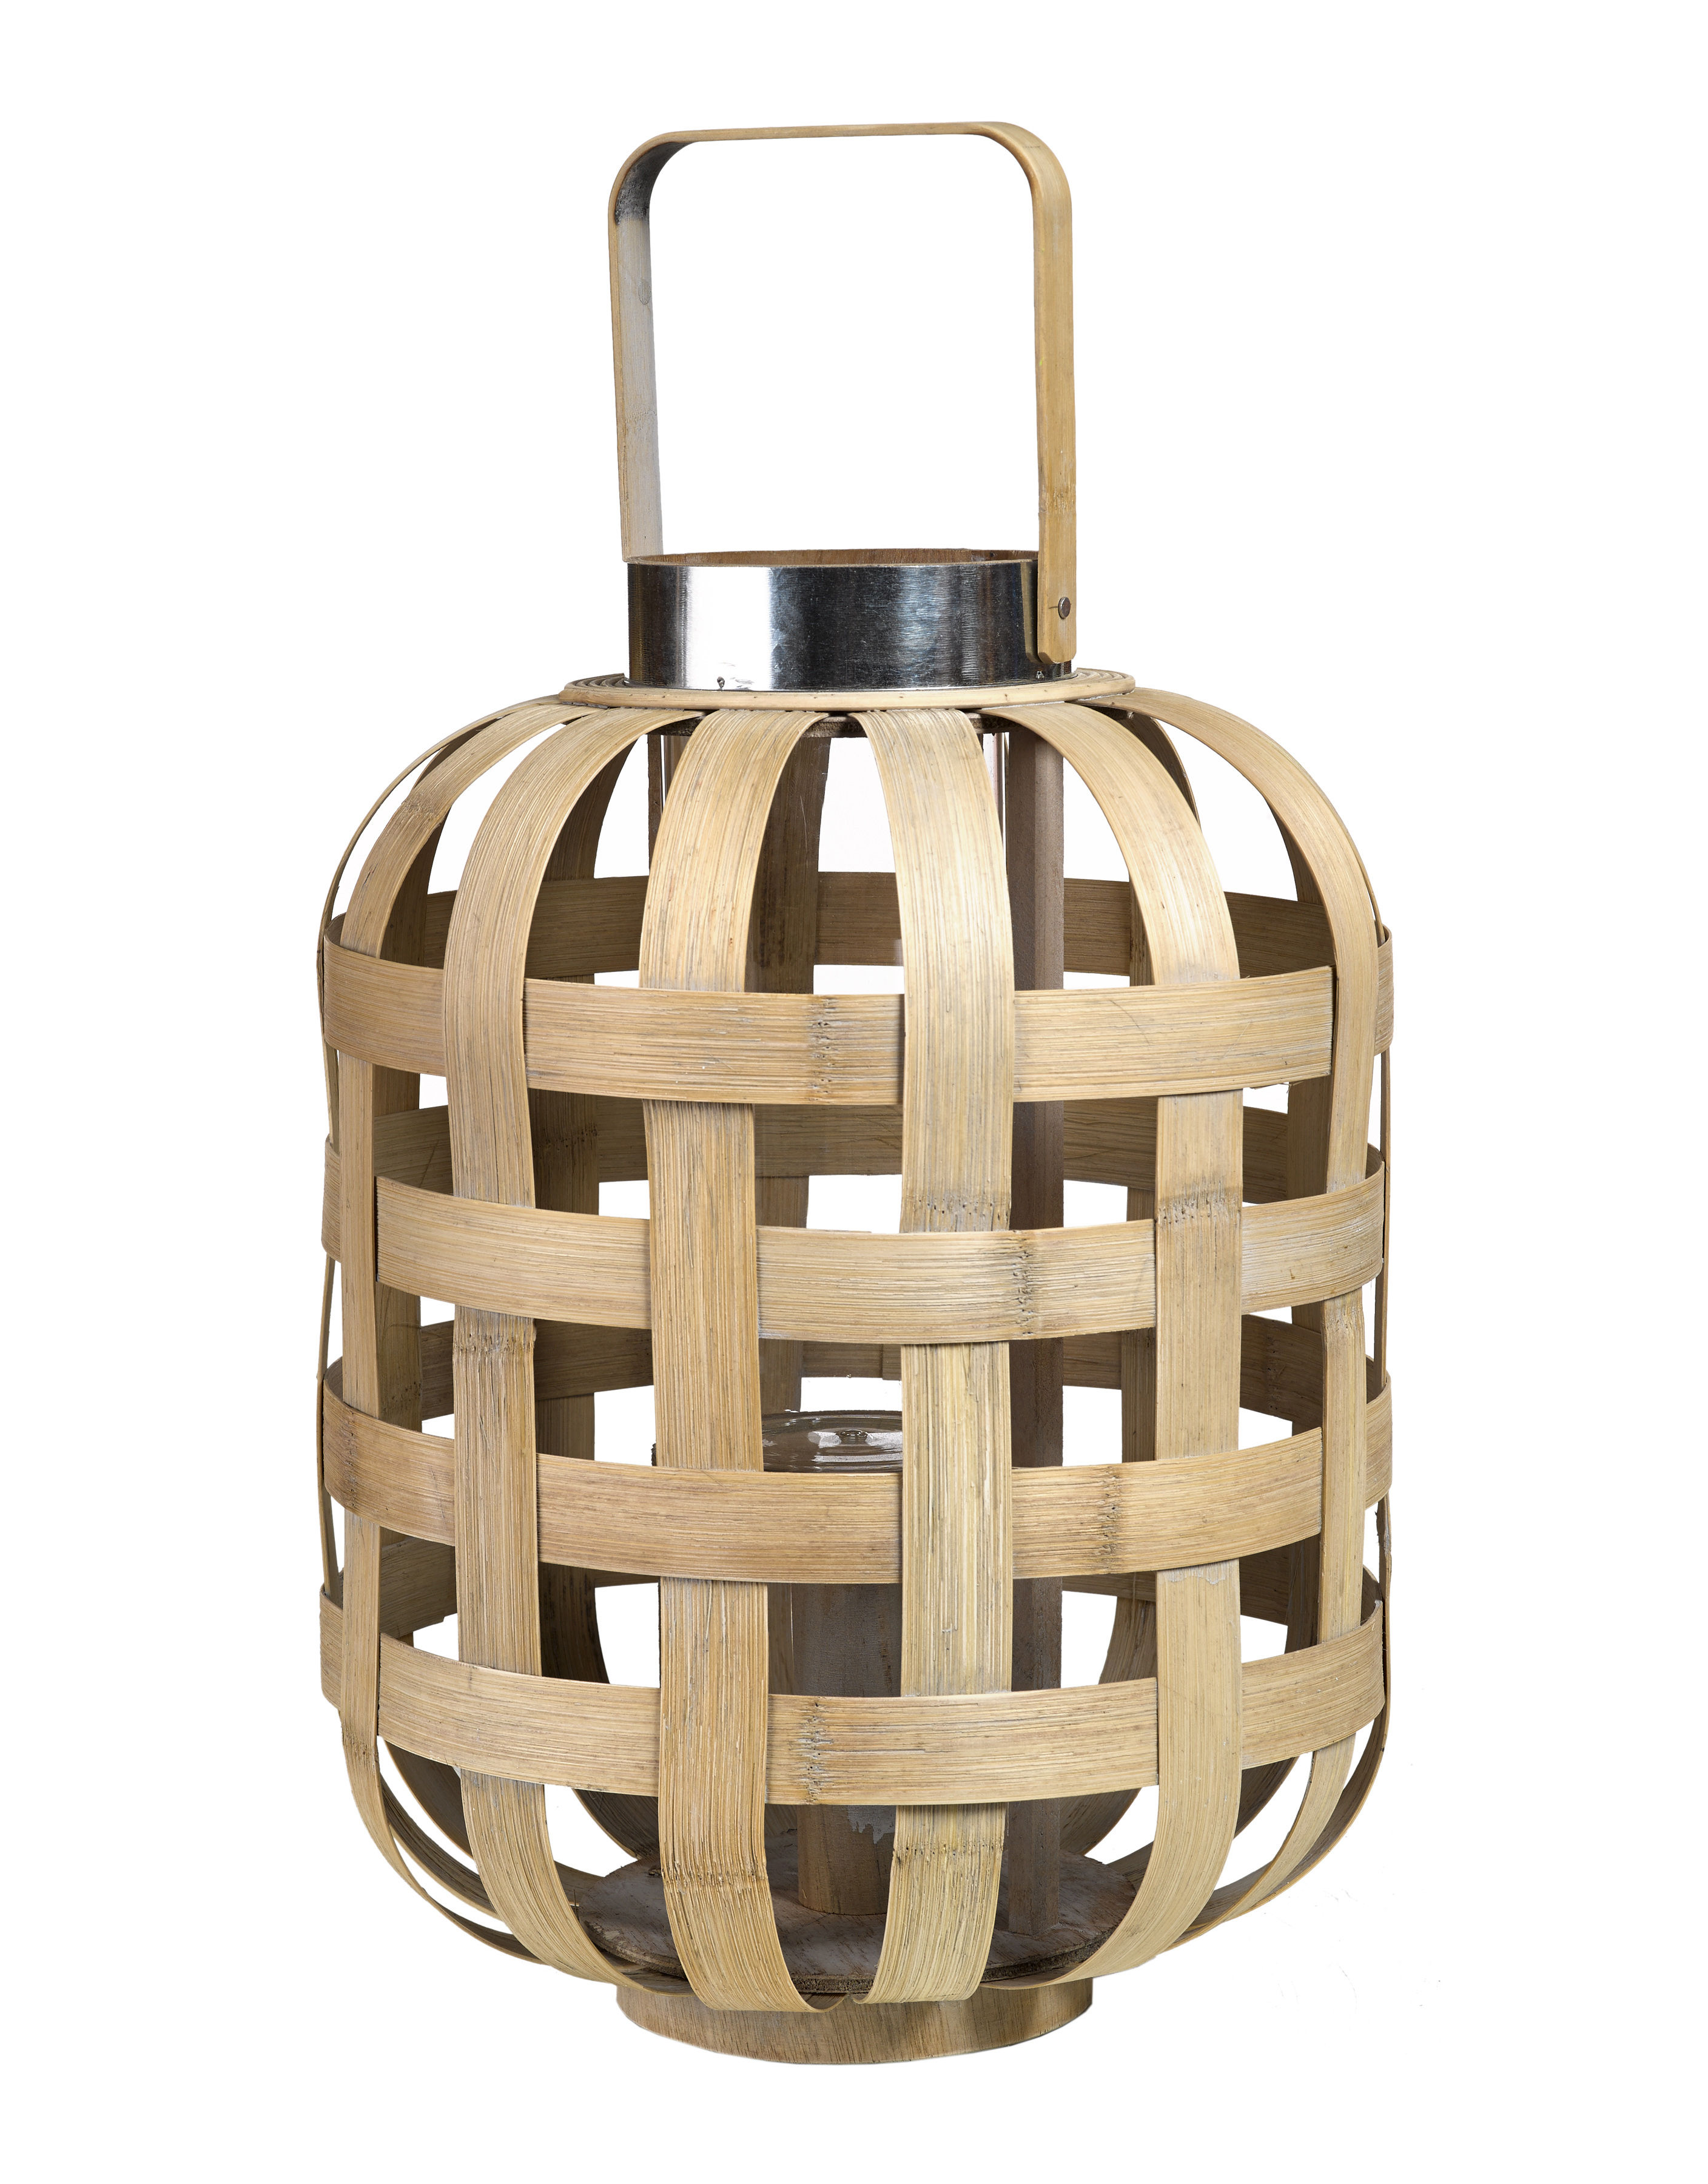 Decoration - Candles & Candle Holders - Strip Classic Lantern - / Bamboo - Ø 31 x H 43 cm by Pols Potten - Classic / Bamboo - Bamboo, Glass